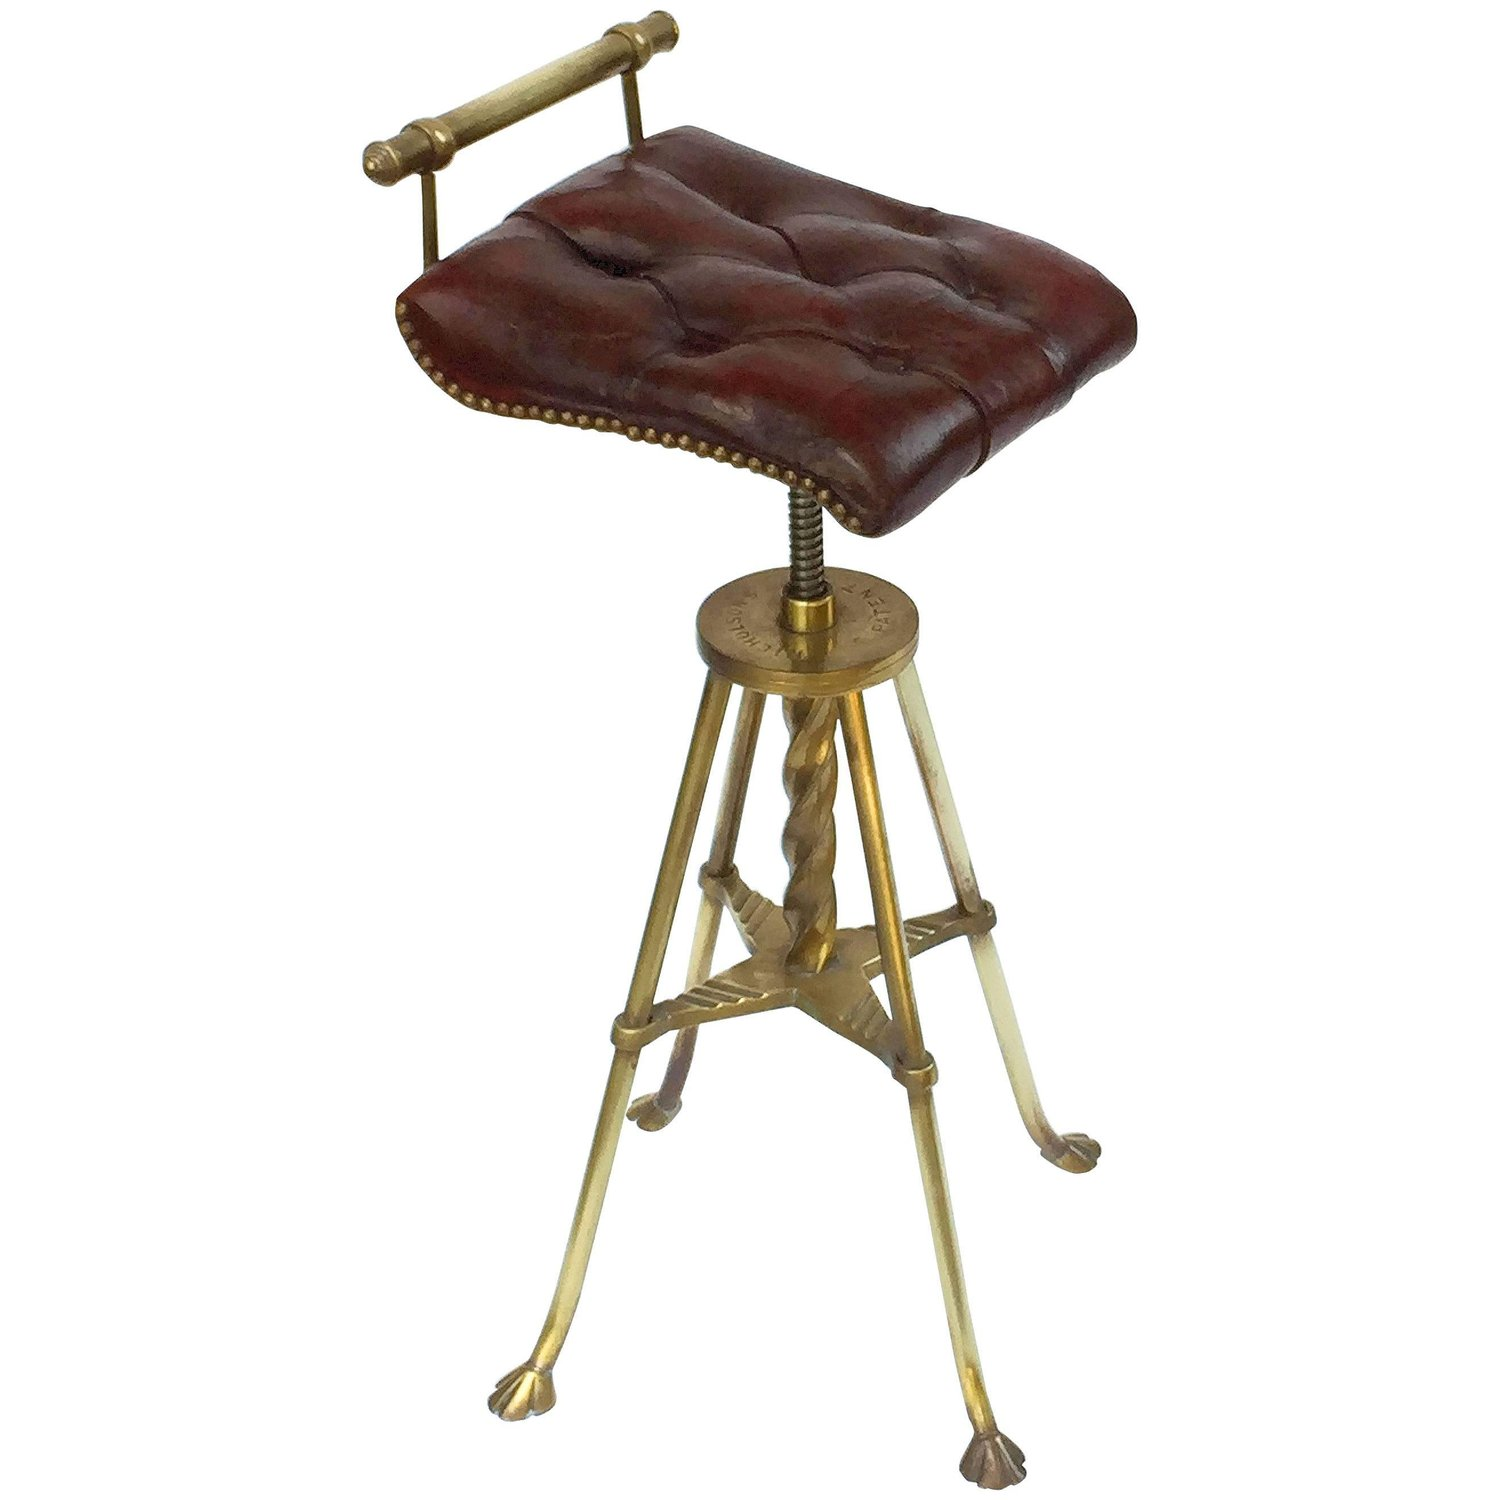 Awesome English Harpists Stool Or Chair Of Brass With Original Lamtechconsult Wood Chair Design Ideas Lamtechconsultcom